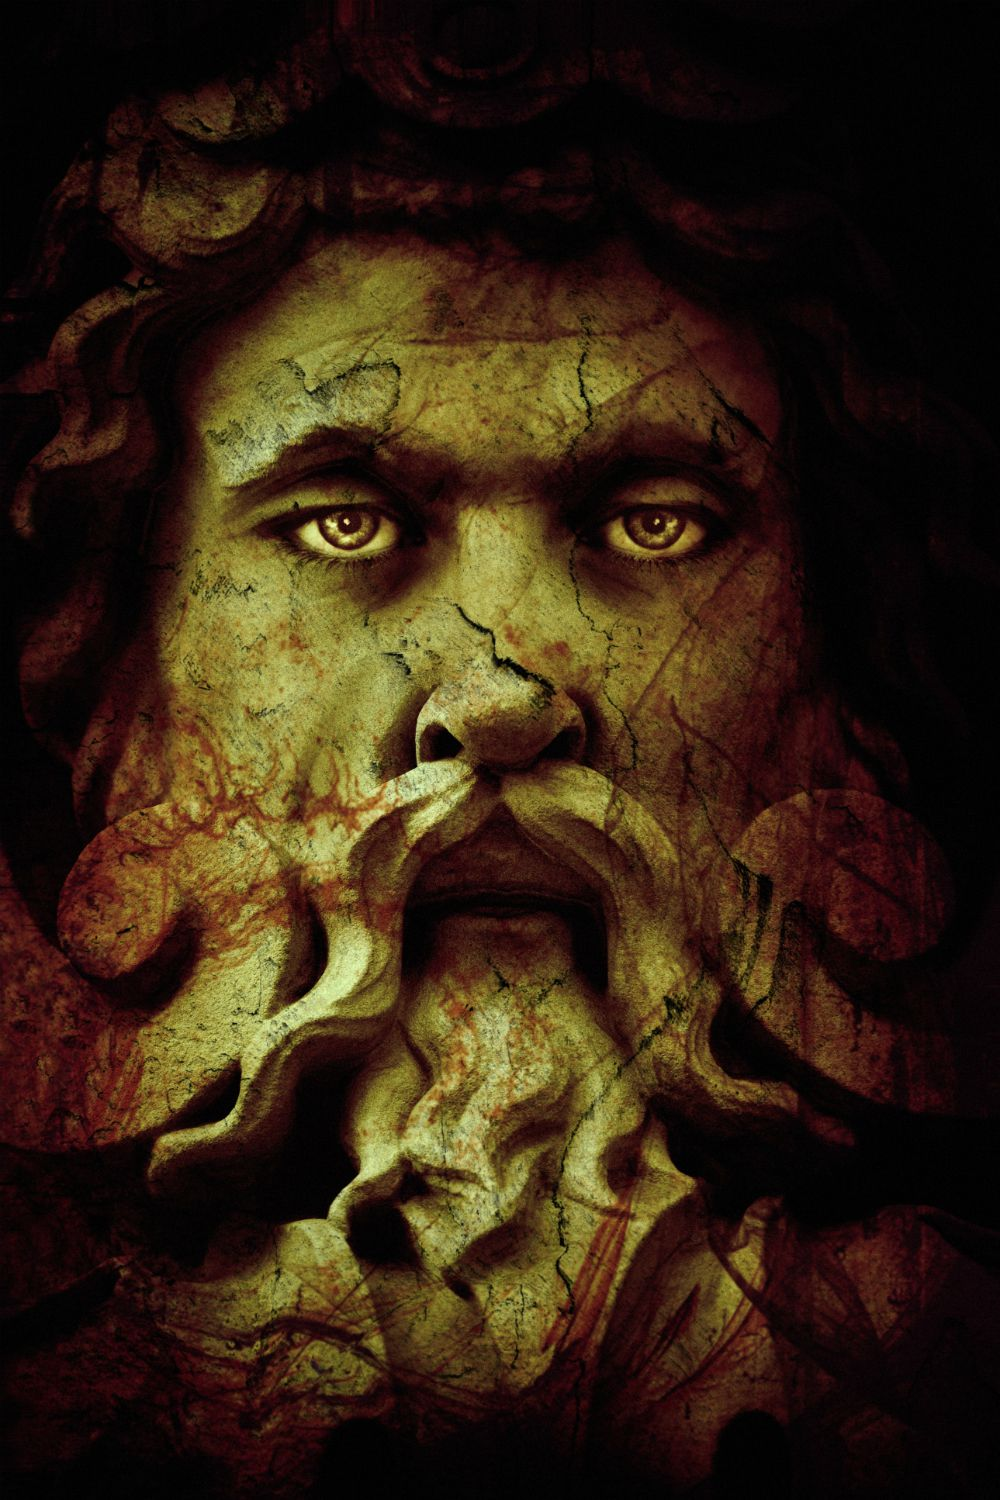 Hades: God of the Underworld, Lord of the Dead, Pluto